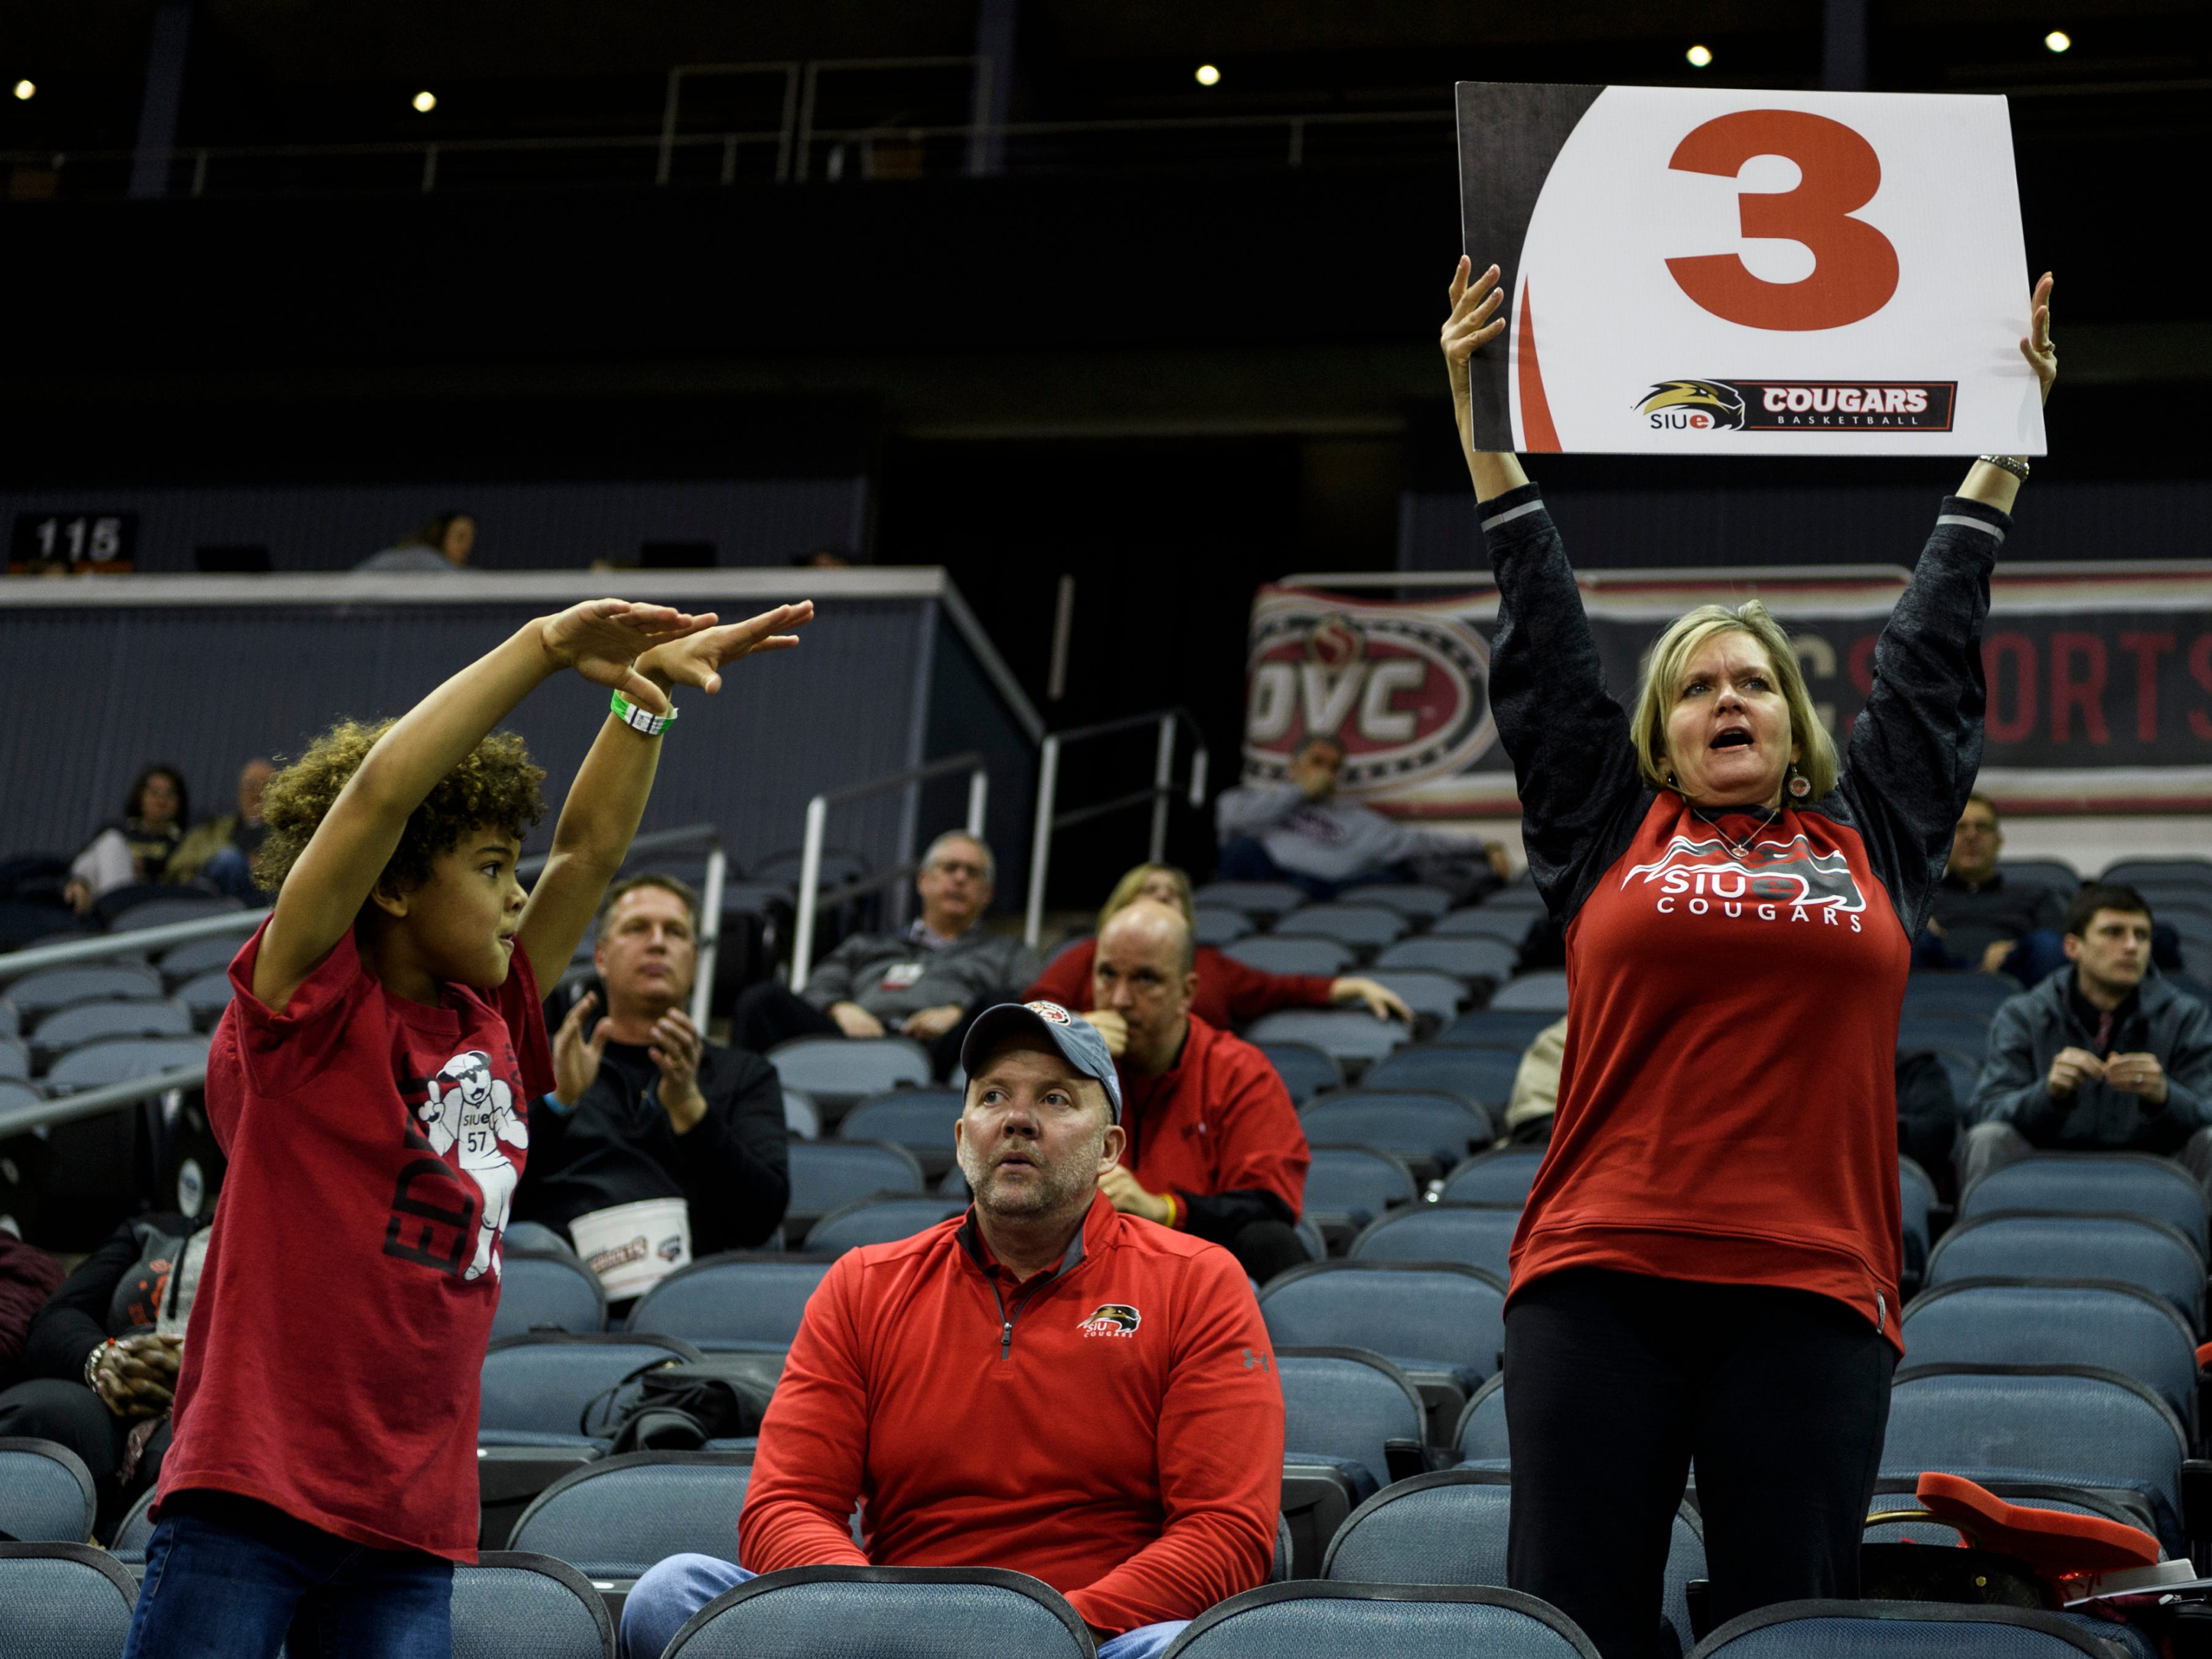 Jaxson Harris, 8, left, and Julie Lindenmeyer, right, cheer for the Southern Illinois University Edwardsville Cougars as Andy Lindenmeyer watches the game during the first round of the Ohio Valley Conference Tournament at Ford Center in Evansville, Ind., Wednesday, March 6, 2019. The Lindenmeyers' son Blake is a guard on the SIUE team.